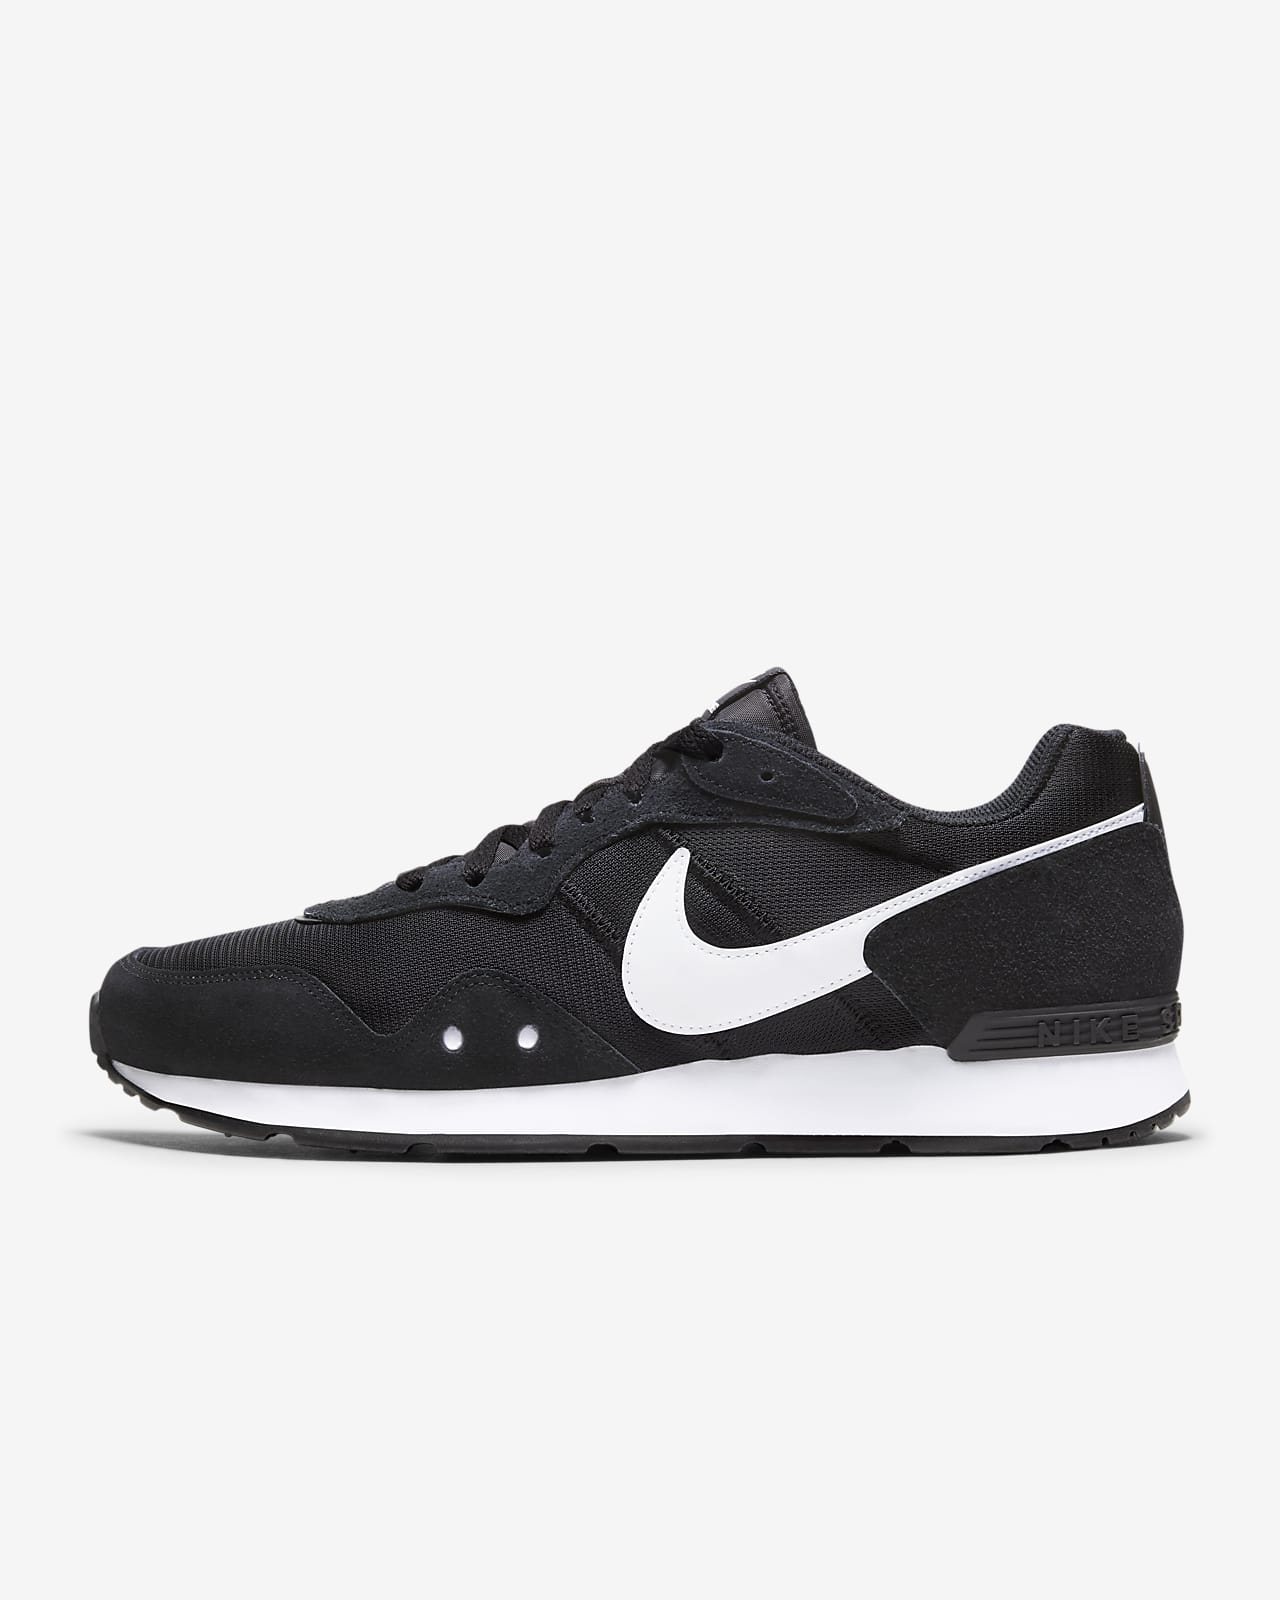 Nike Mens Venture Runner - Black/White SP-Footwear-Mens Nike